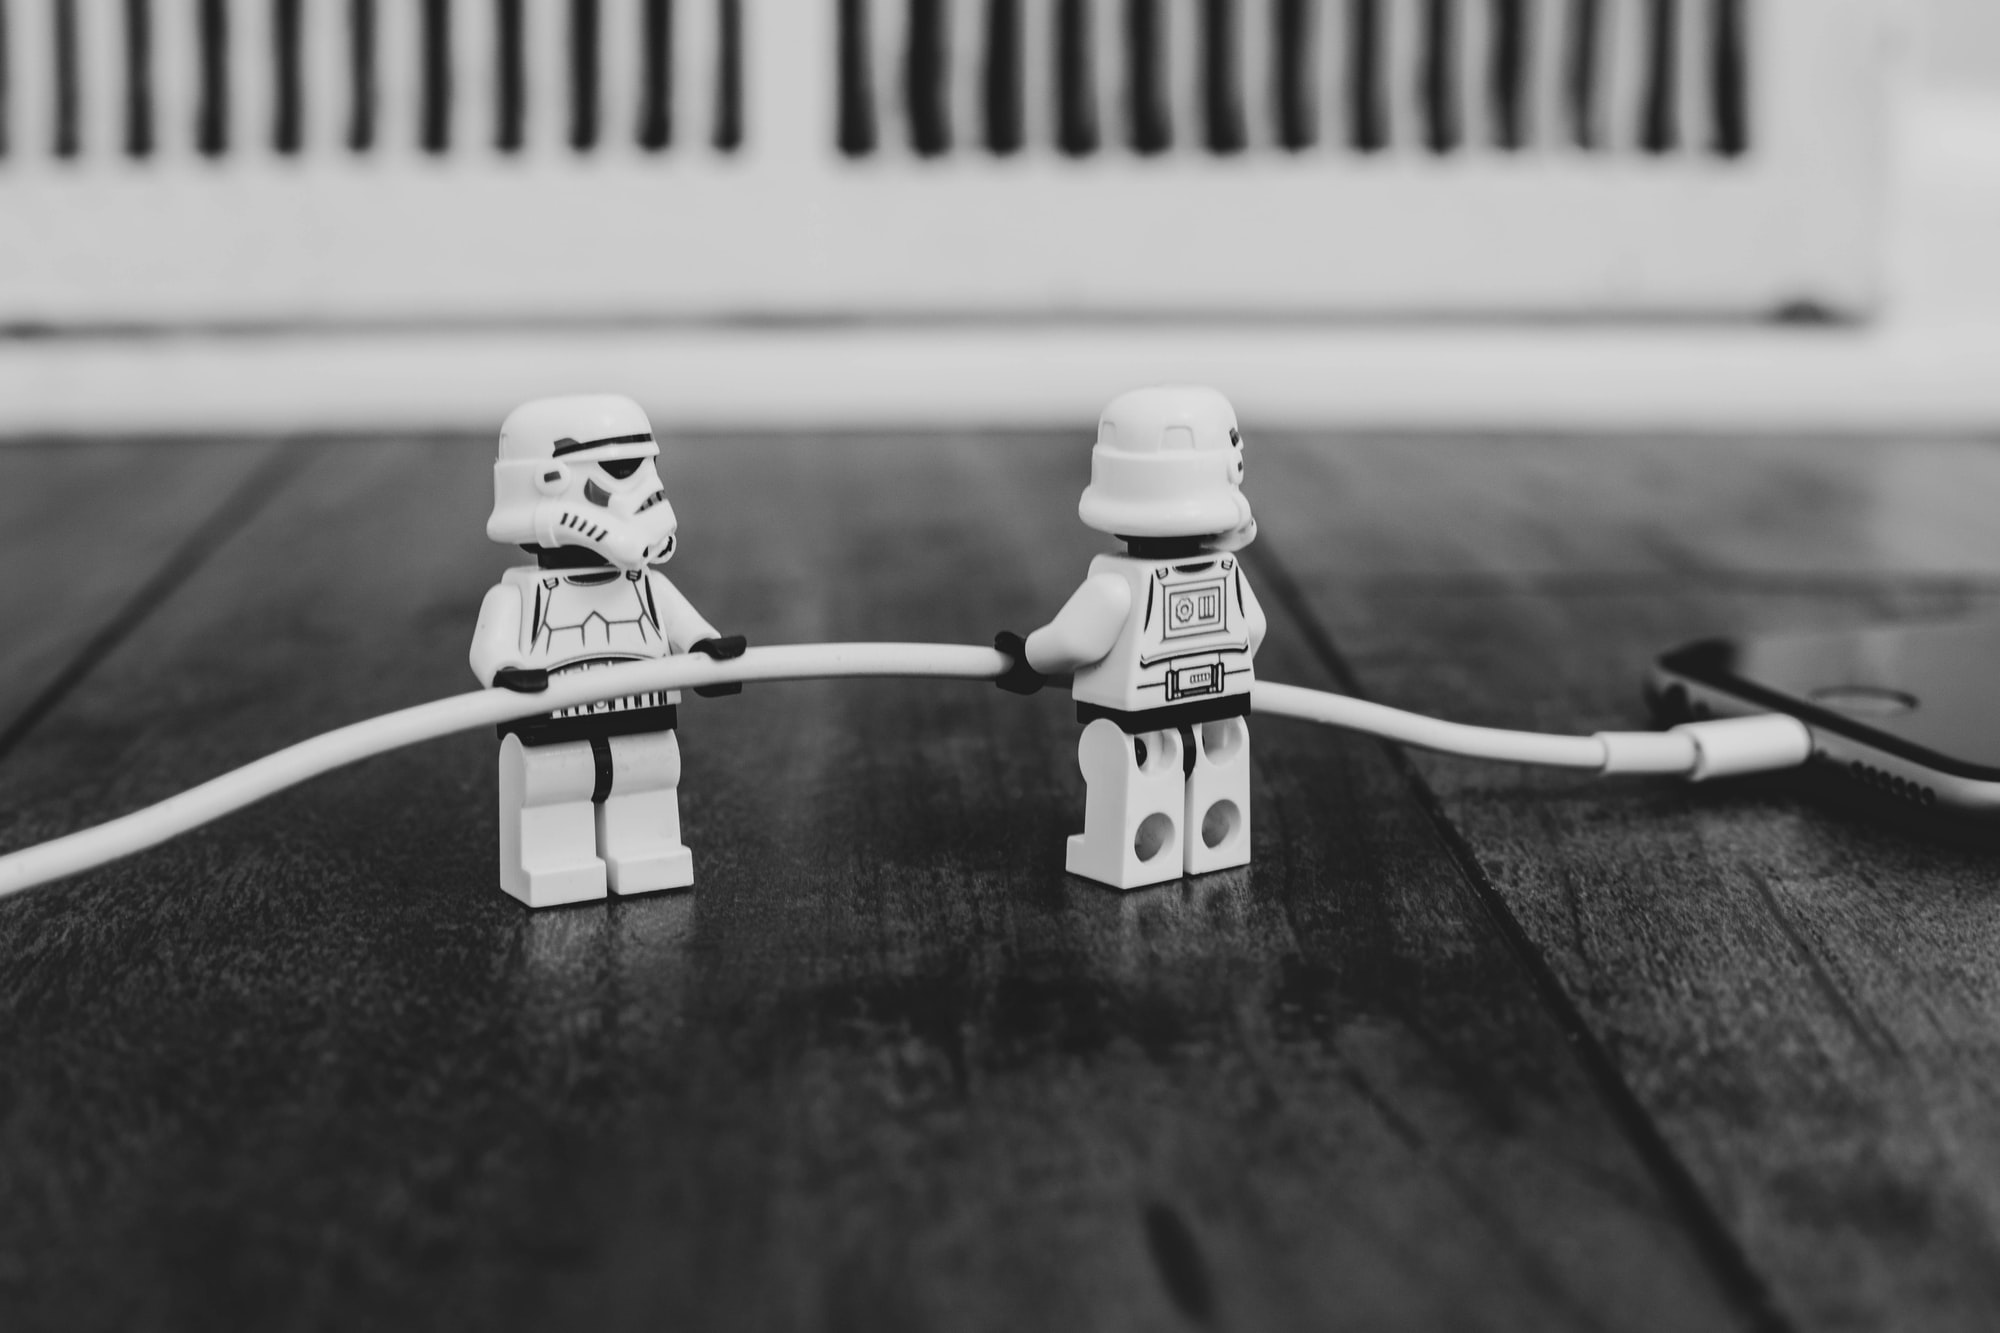 Storm troopers collaborating to charge an iPhone